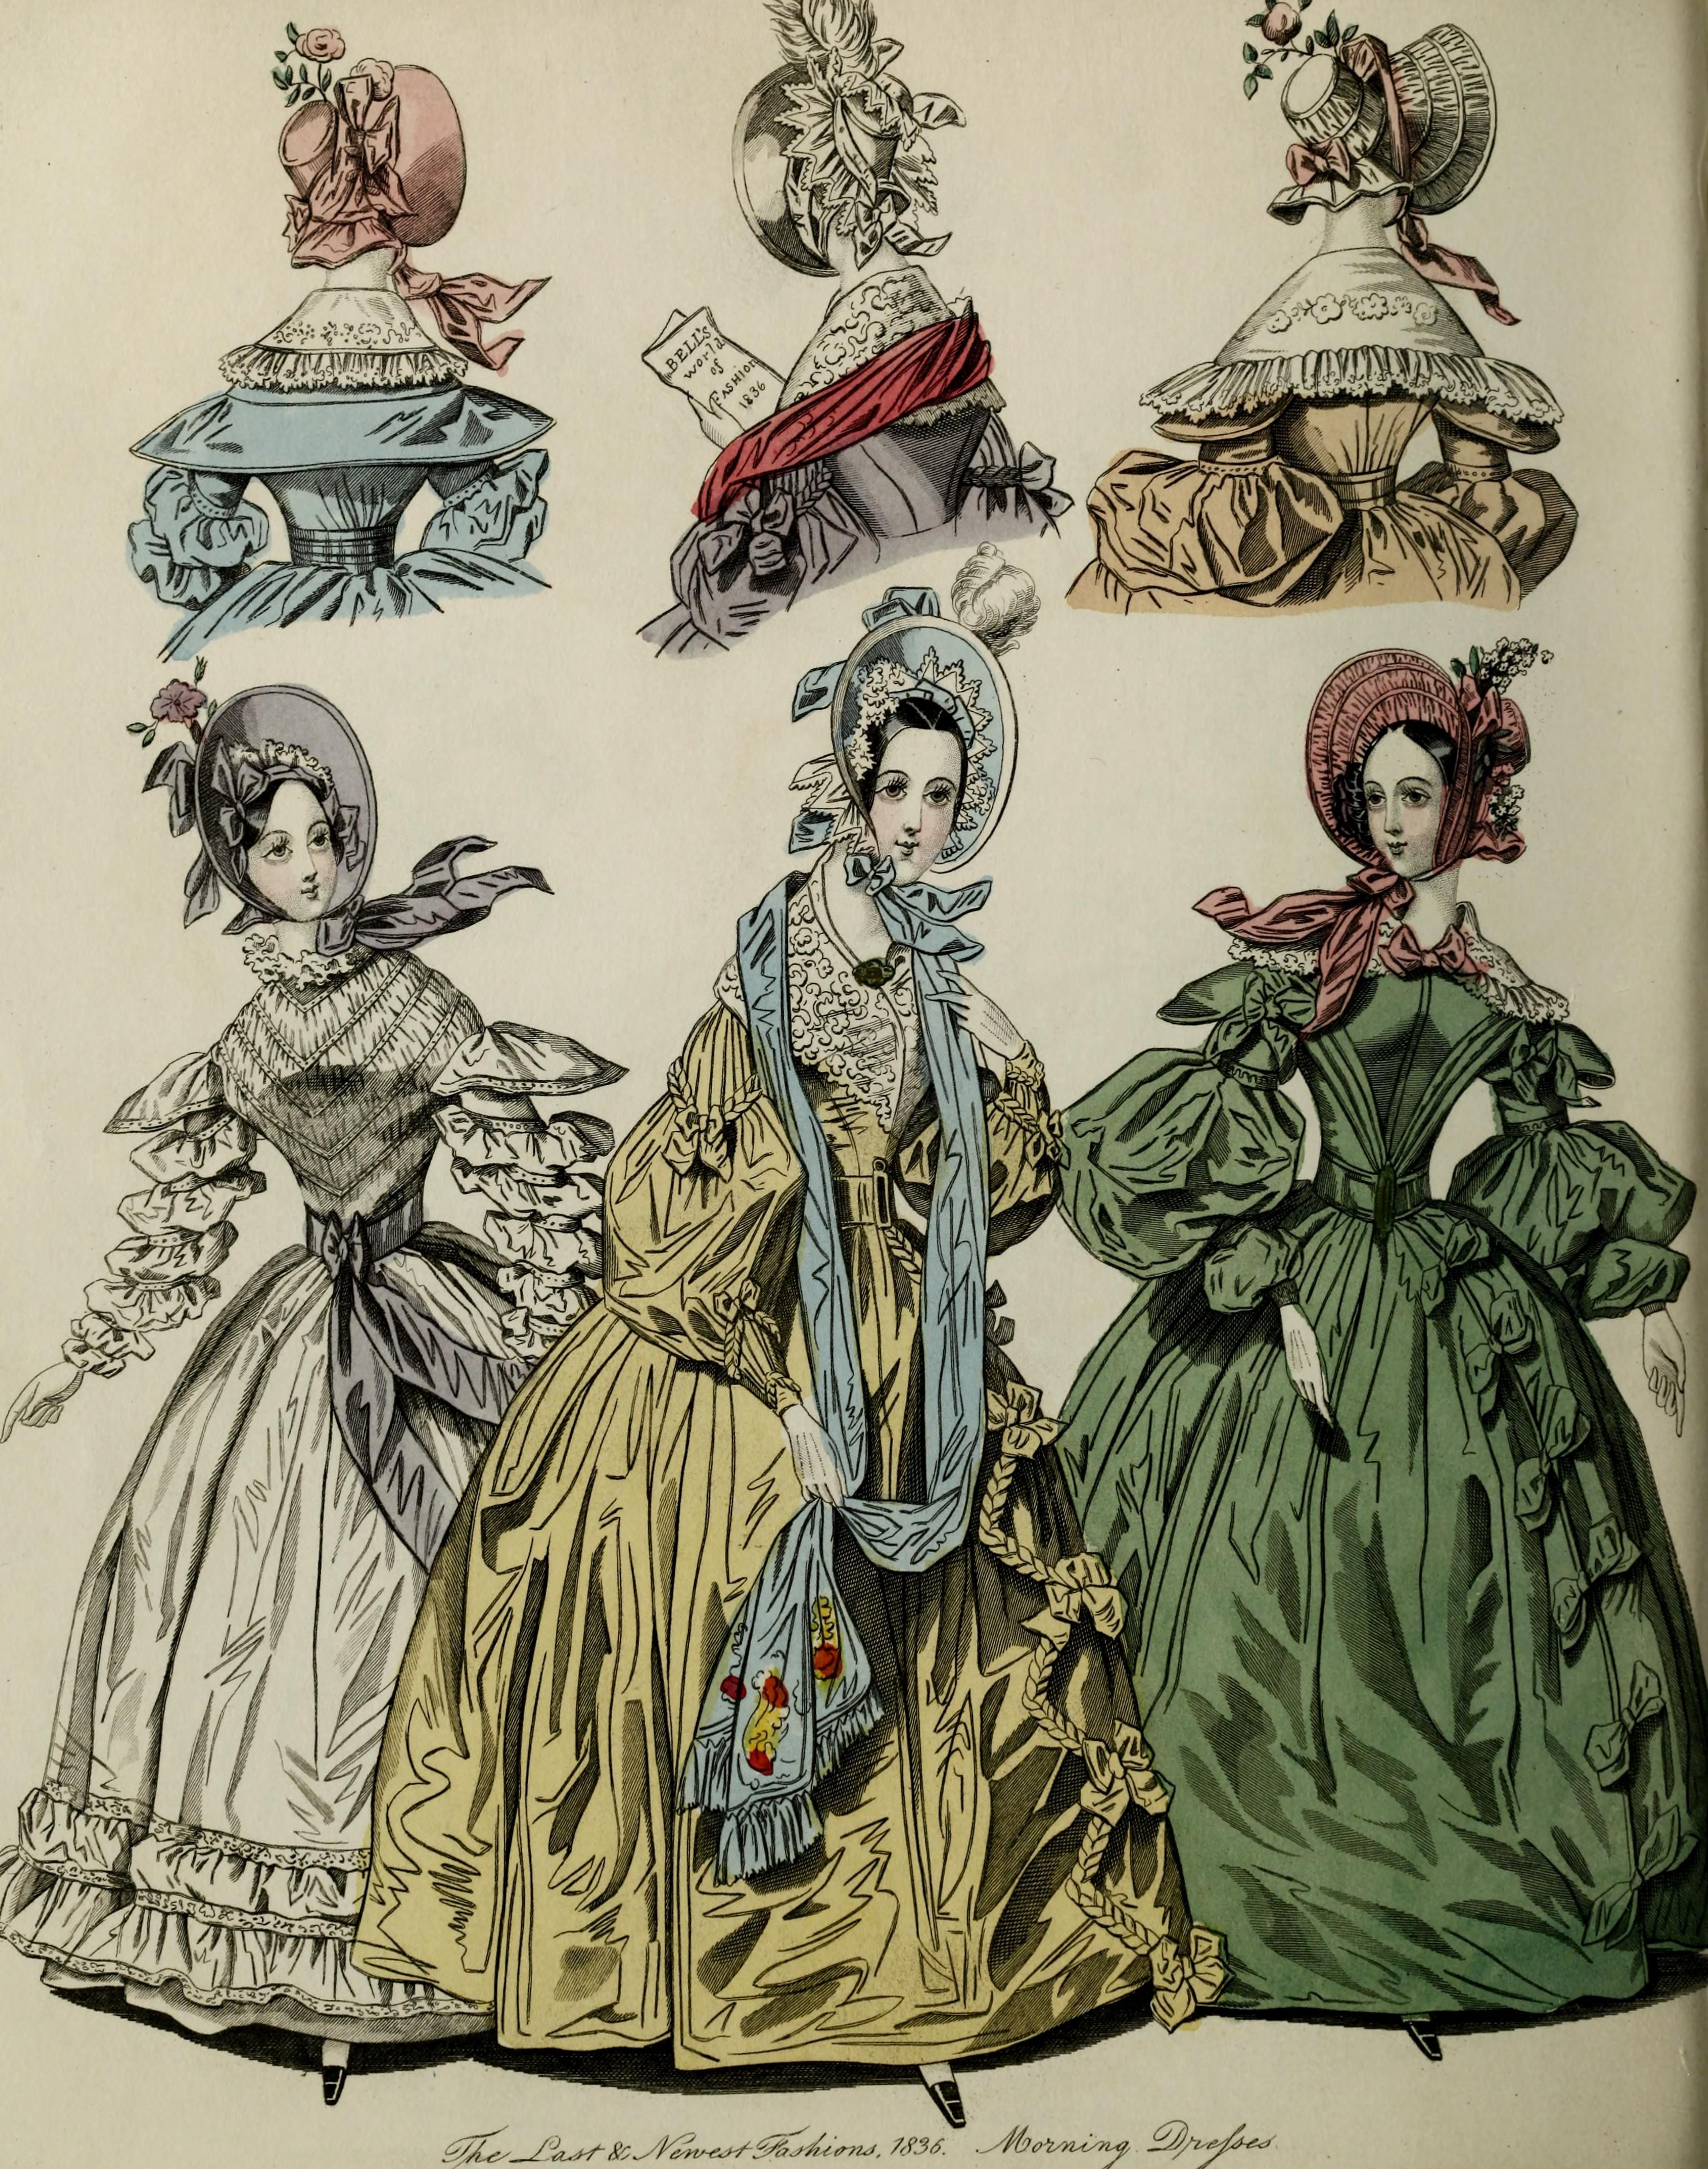 The World of fashion and continental feuilletons